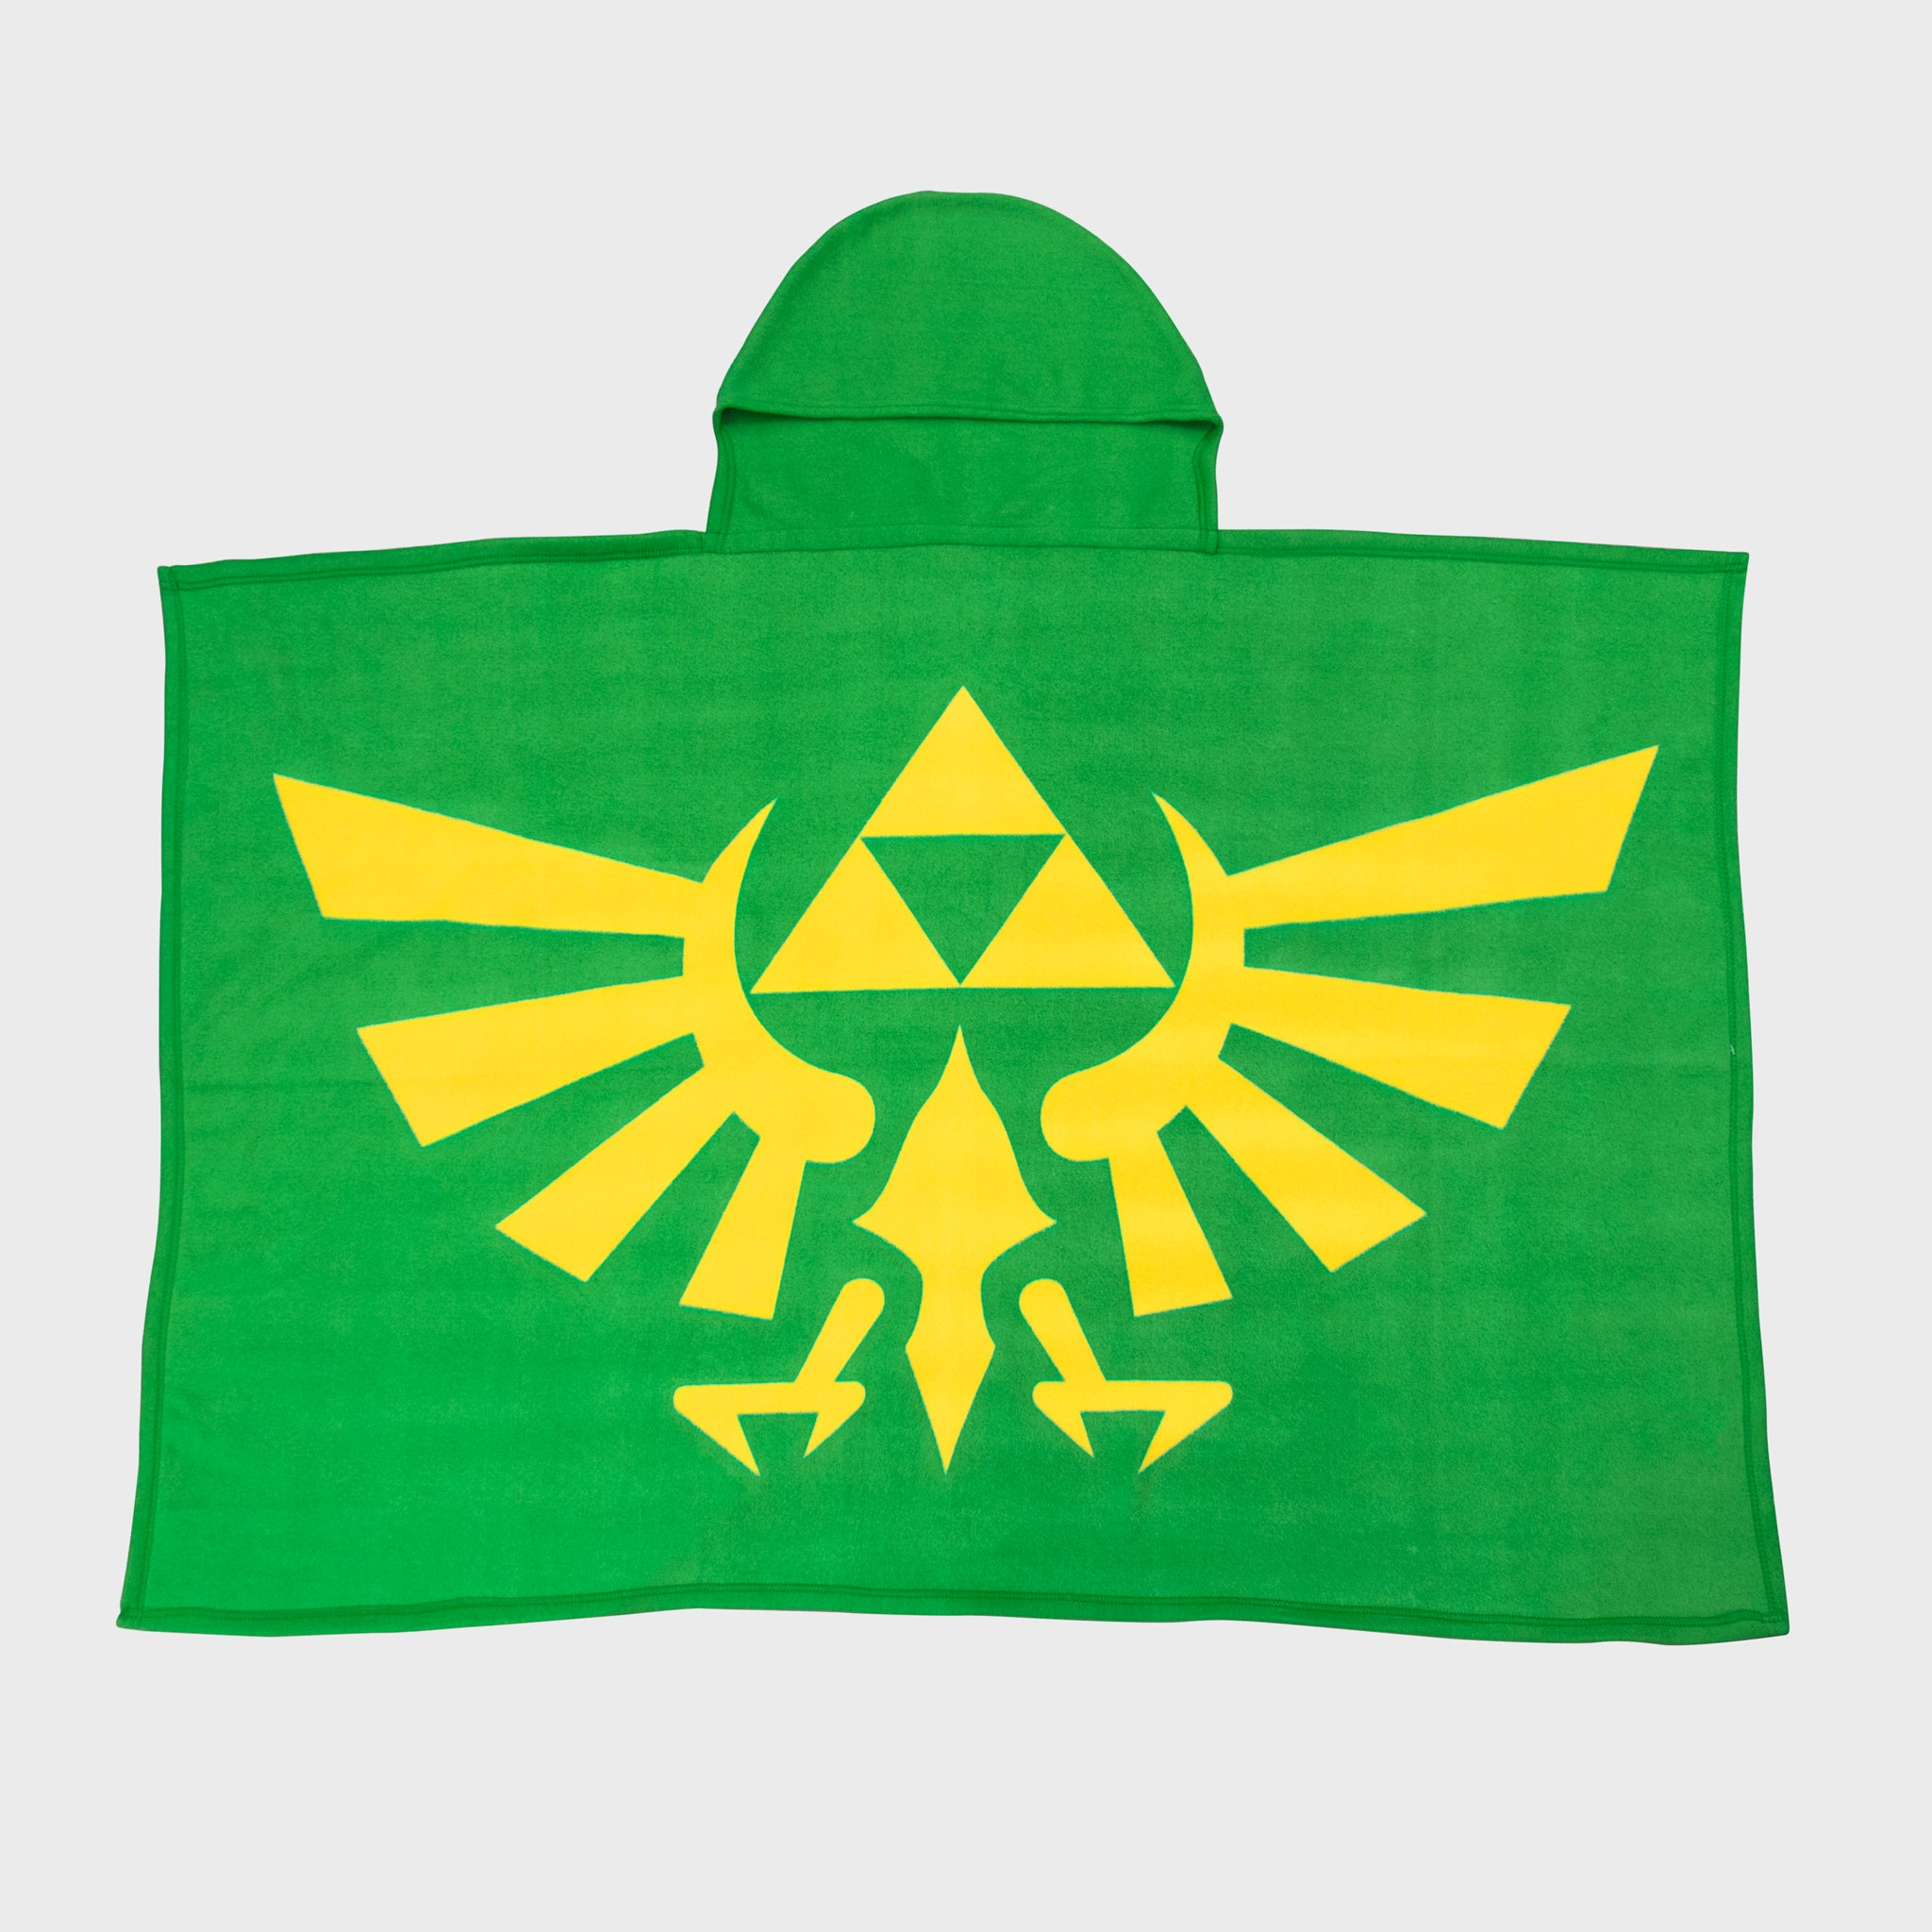 the legend of zelda loz nintendo video games hyrule link royal family evergreen collectors box accessories collectibles culturefly hooded blanket green tunic